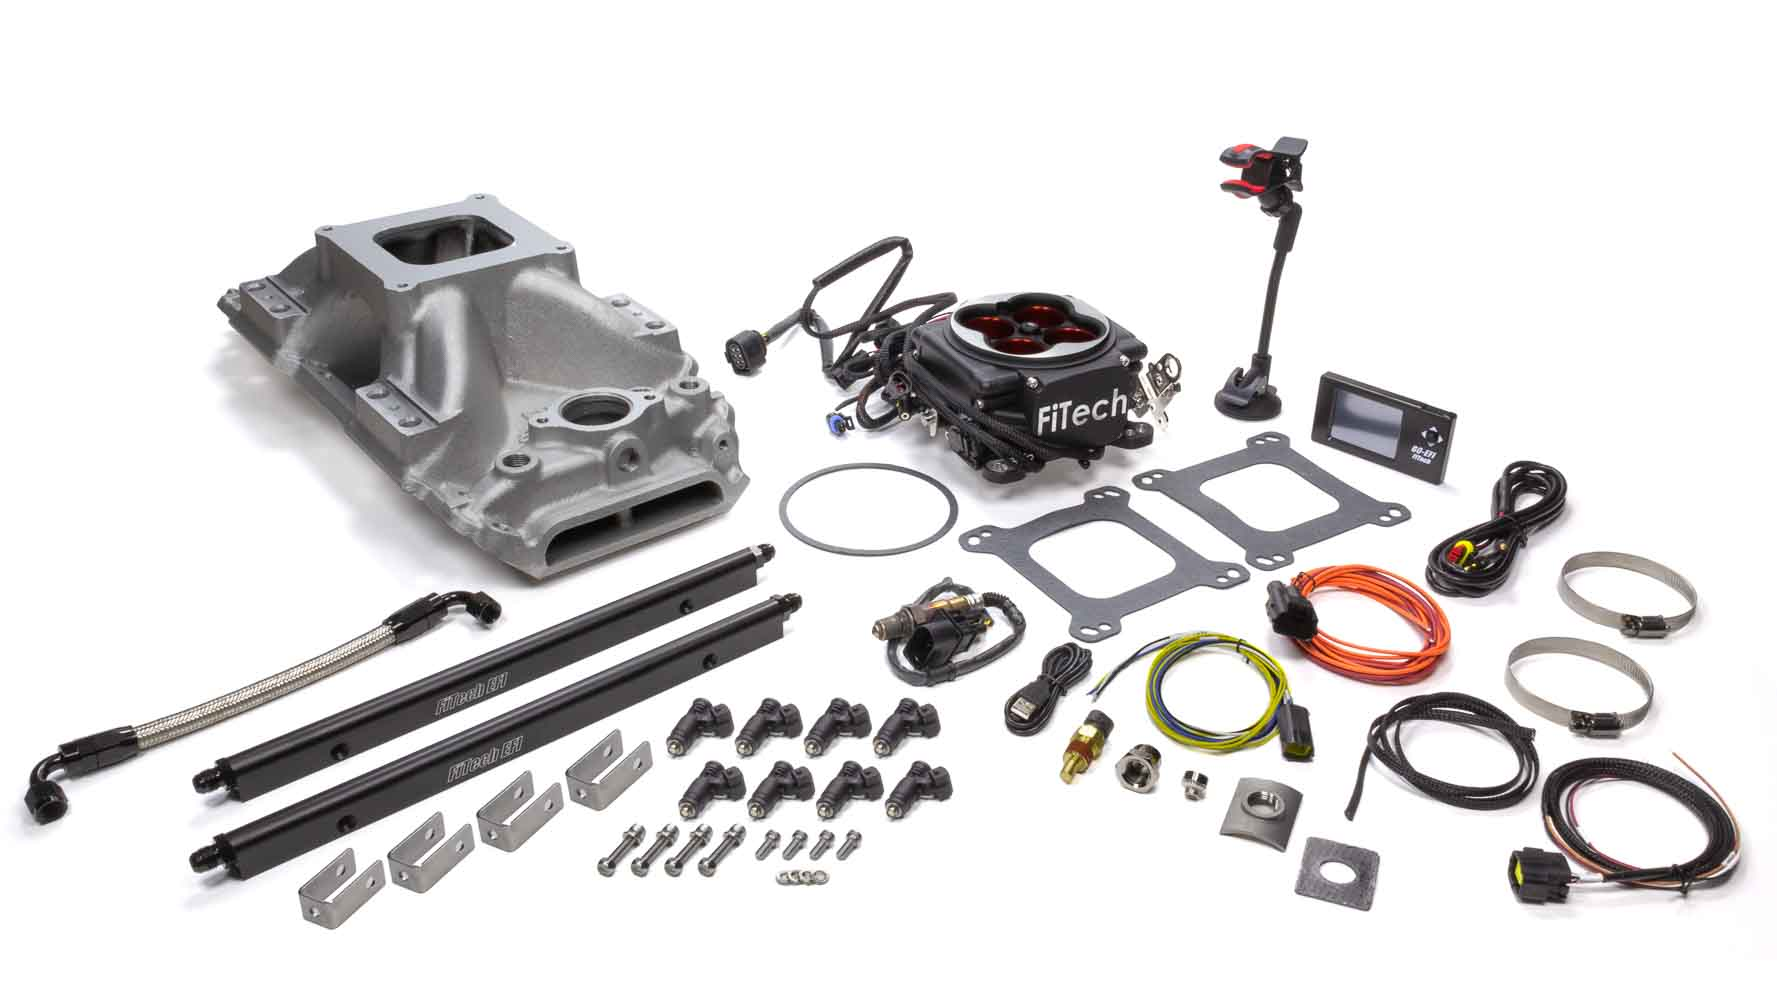 Shop for FITECH FUEL INJECTION Fuel Injection Systems and